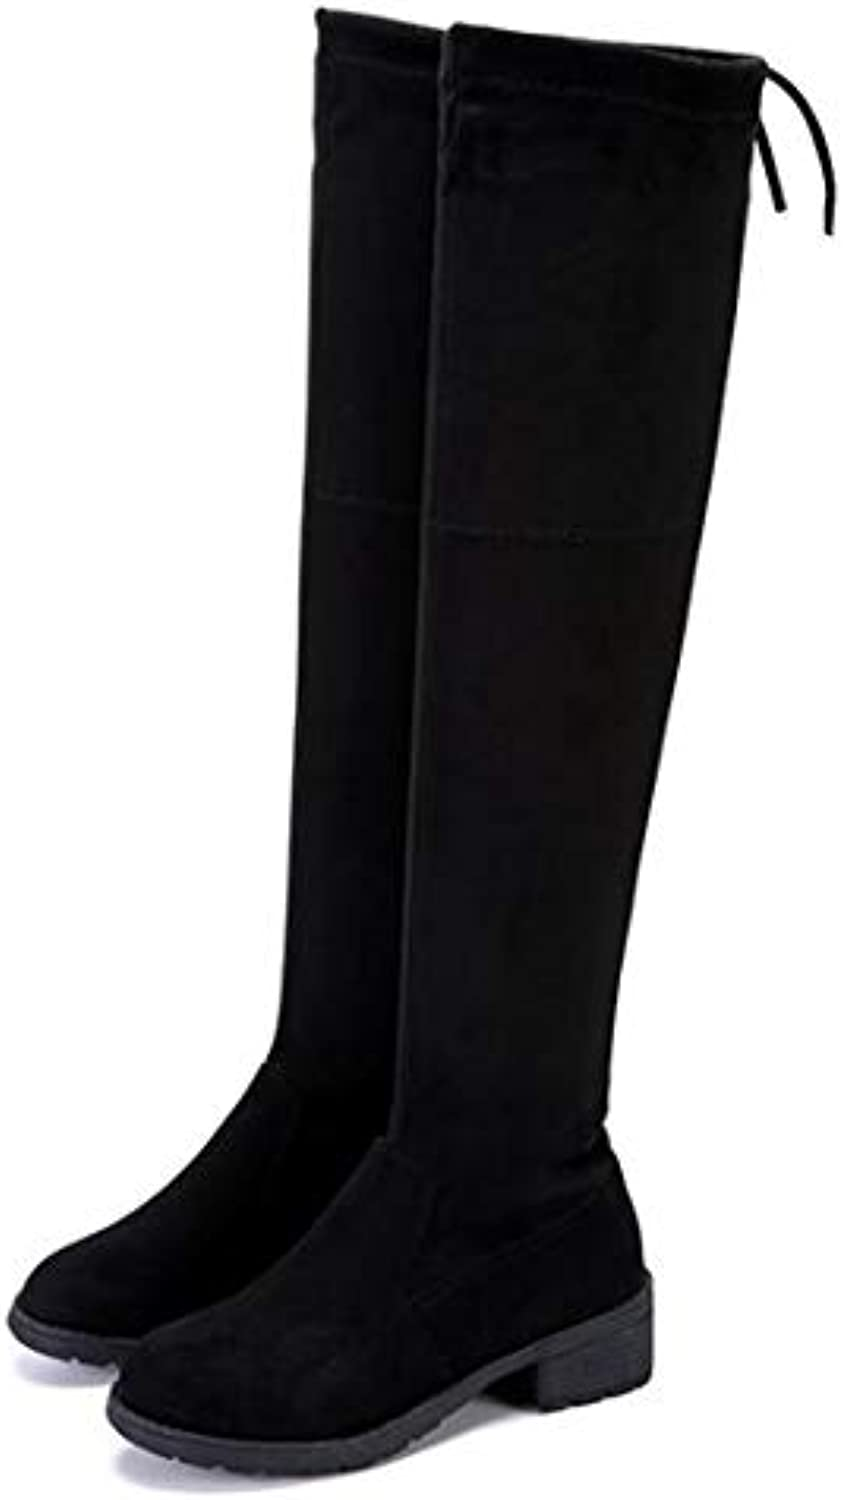 T-JULY Ladies Square Low Heel Over The Knee Boots Female Scrub Black Round Toe Motorcycle Boots